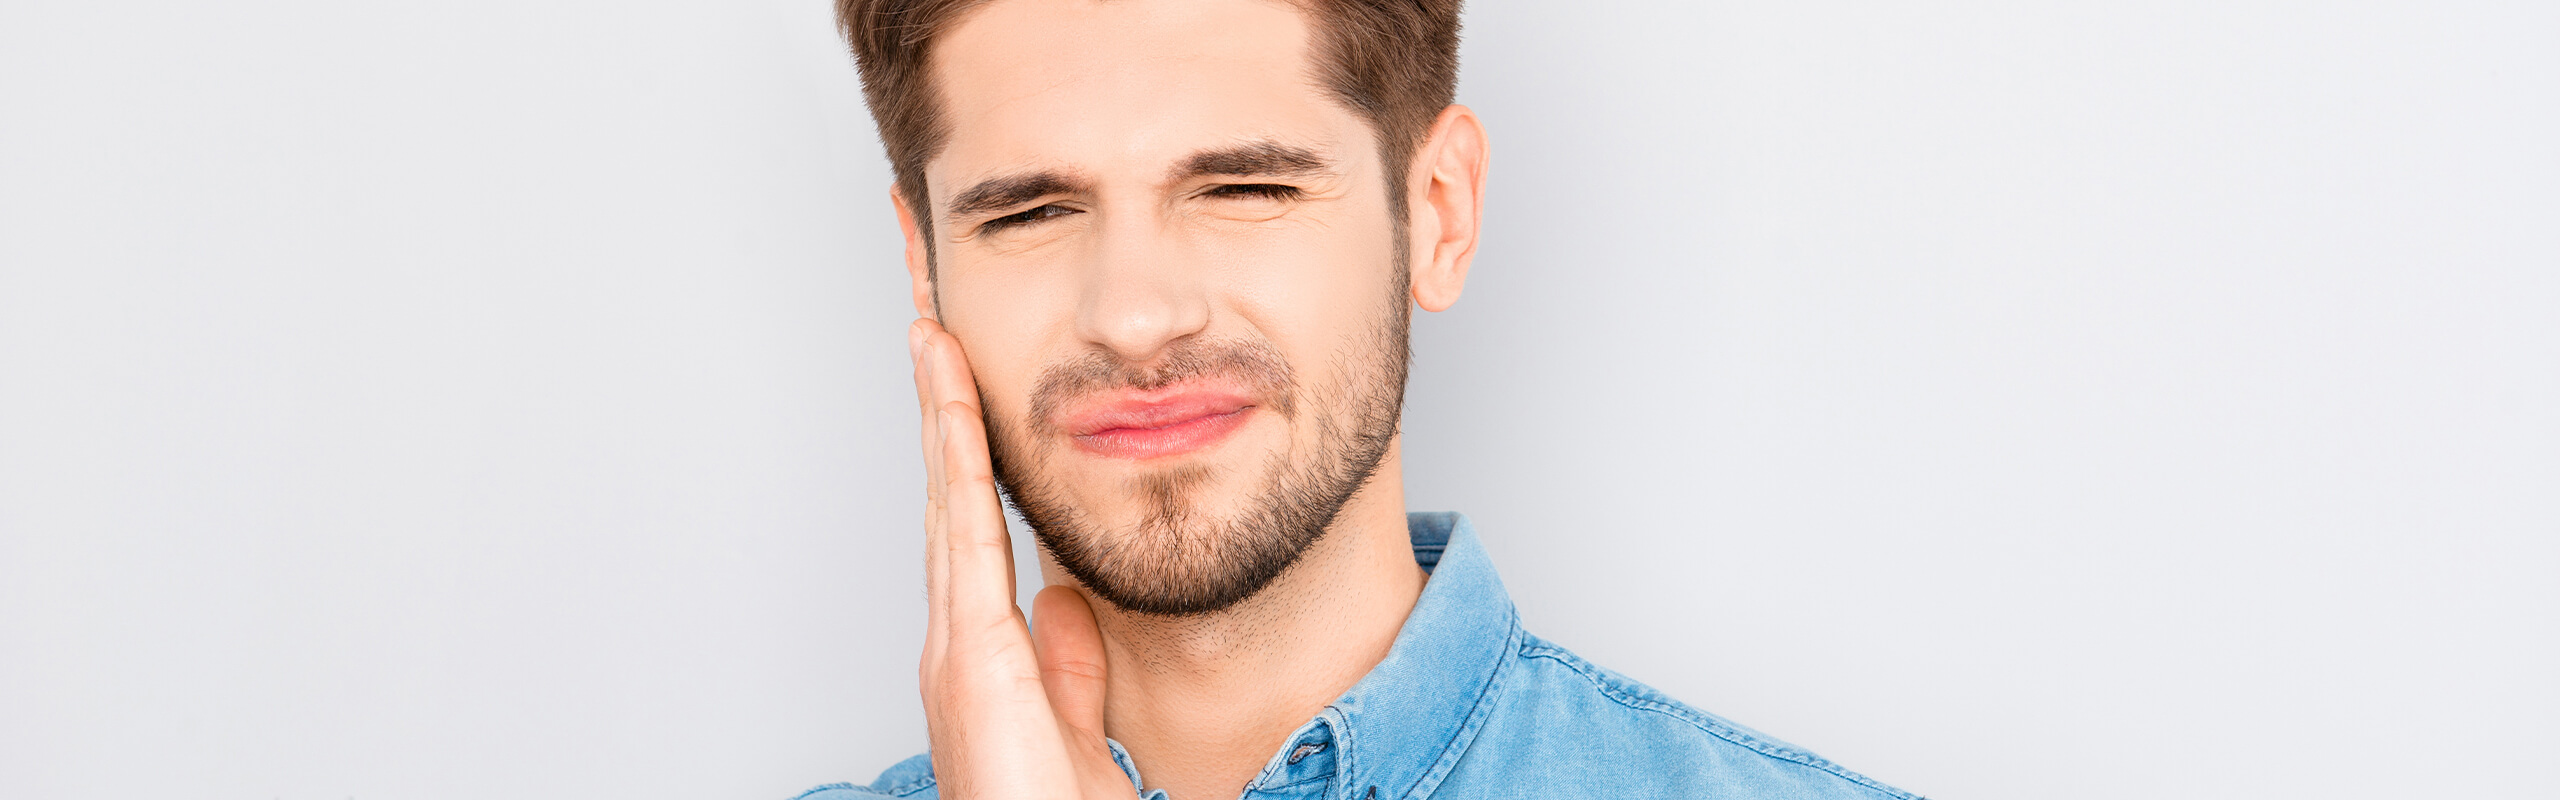 Man holding face with tooth pain